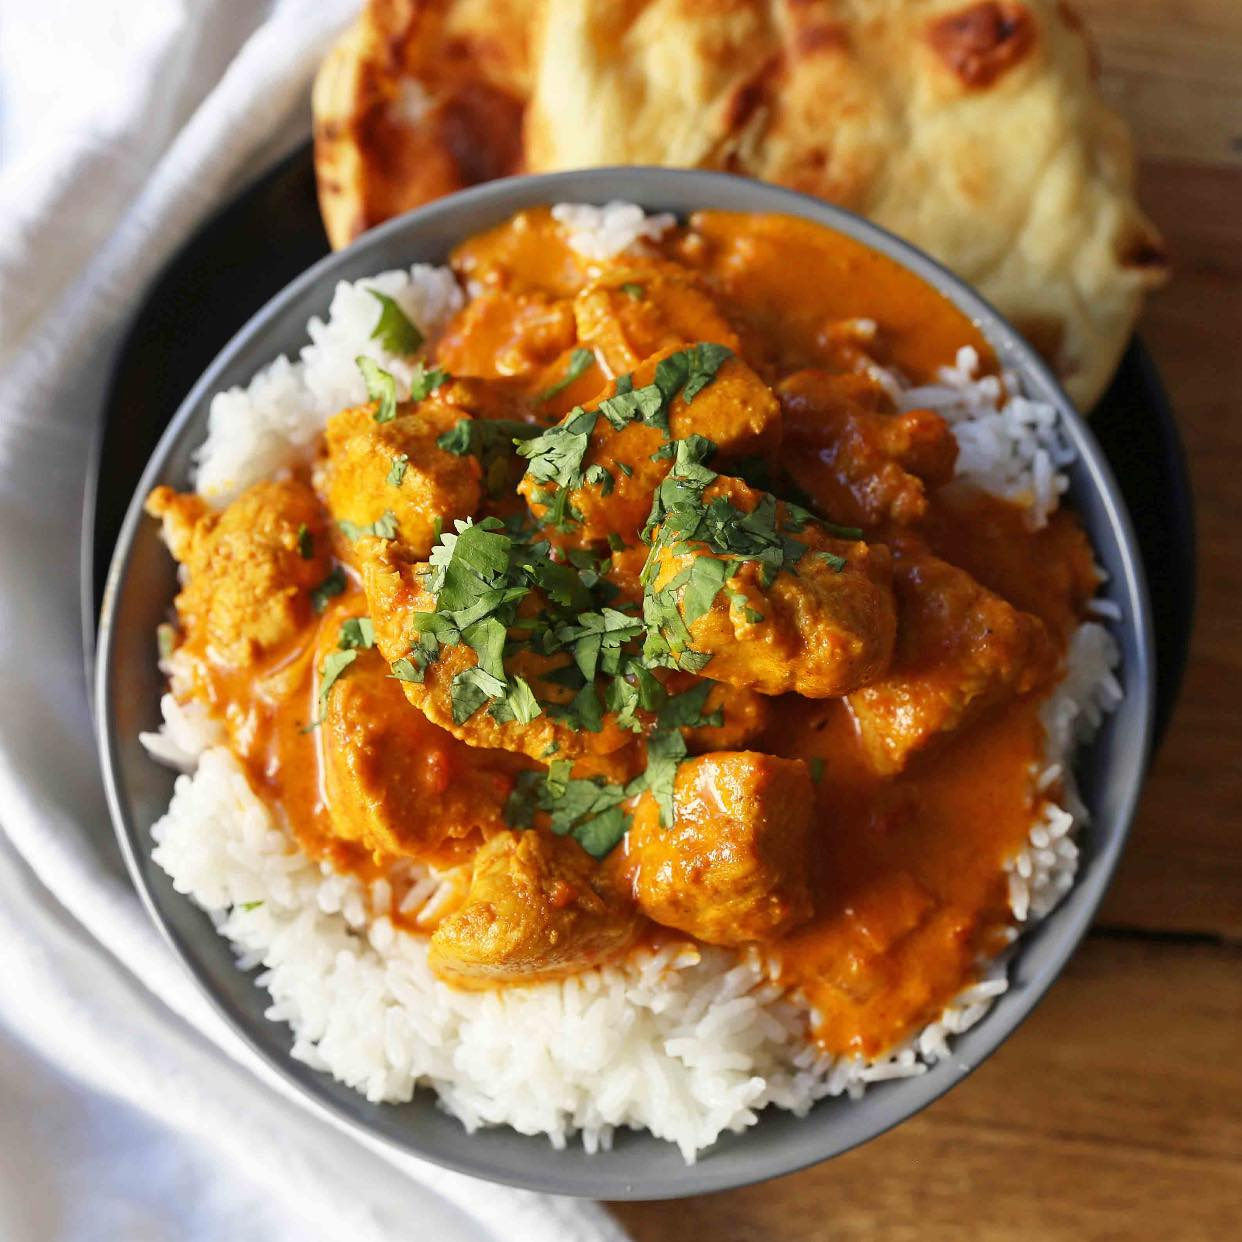 Lillys Authentic Indian Cuisine